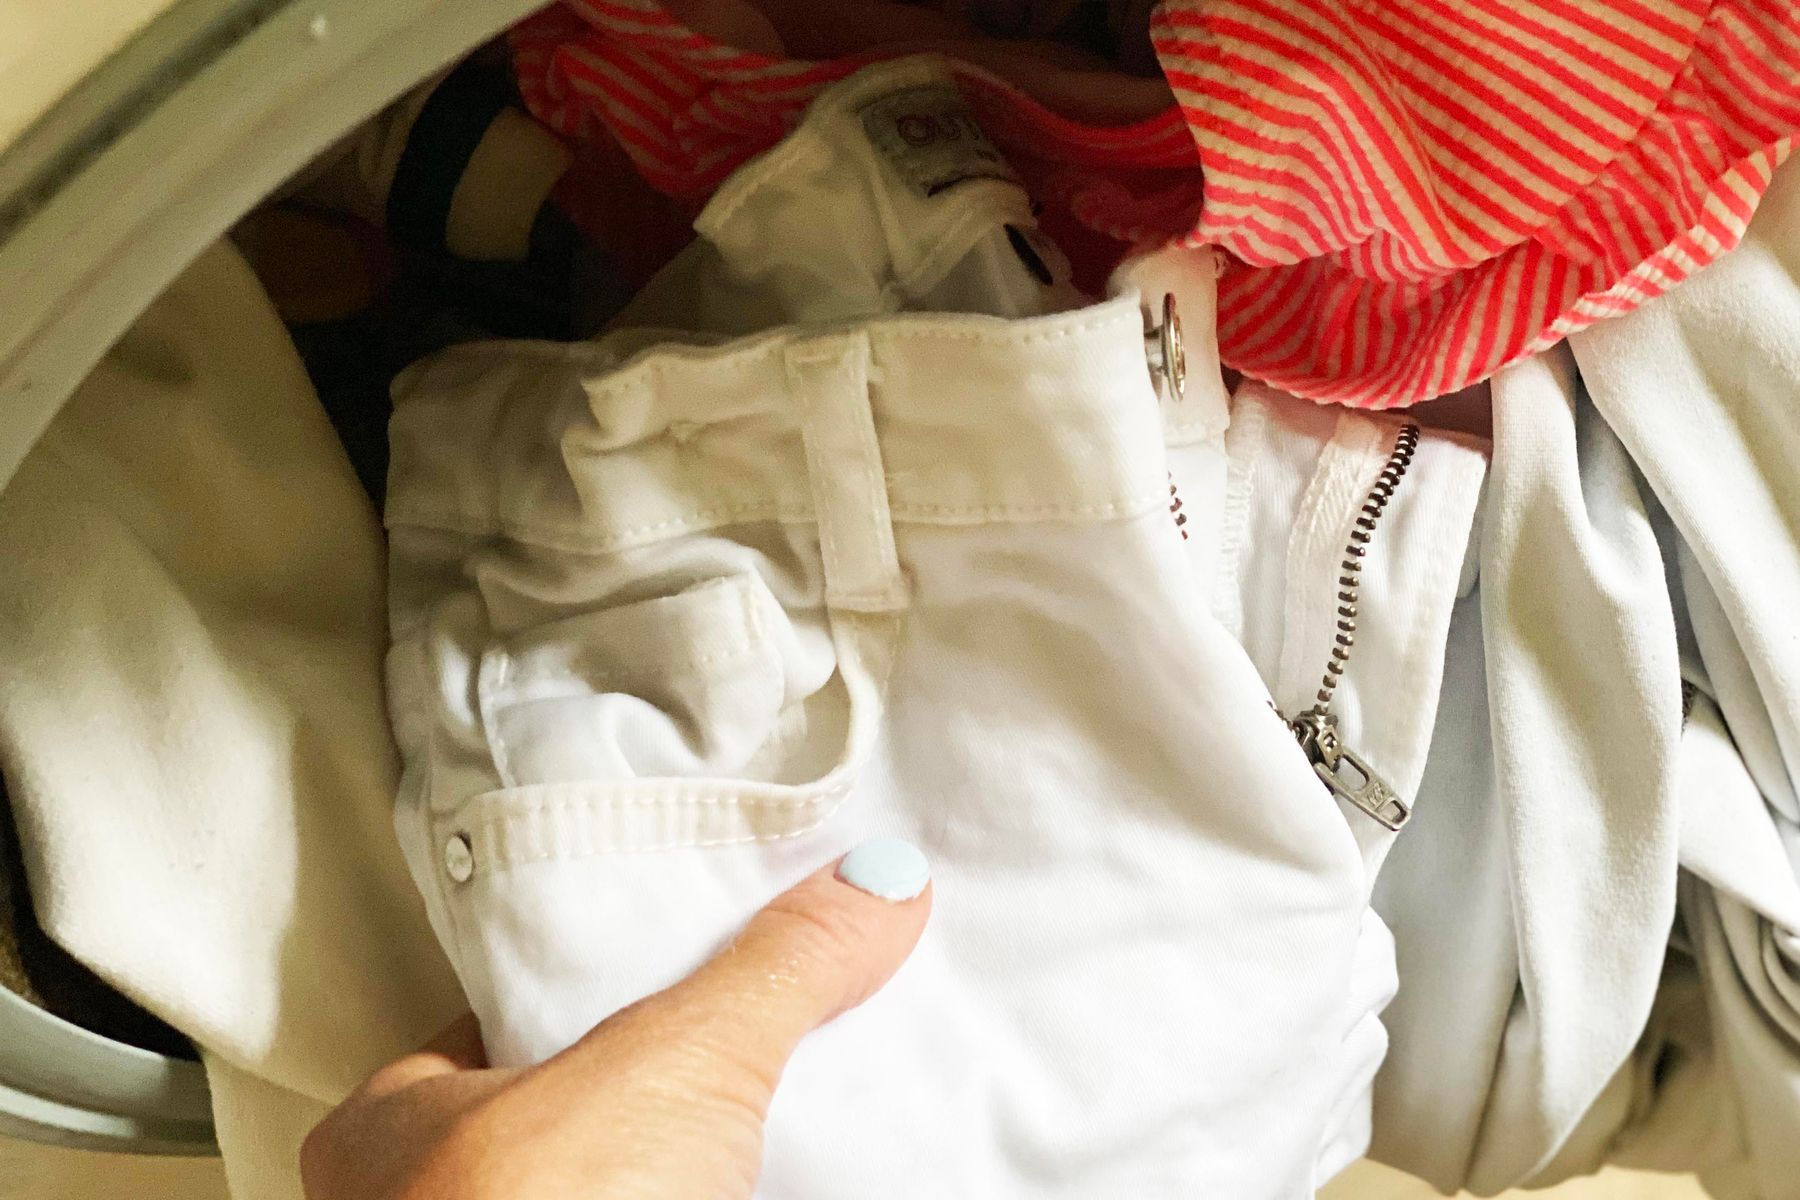 Step 4: Clothes into washing machine